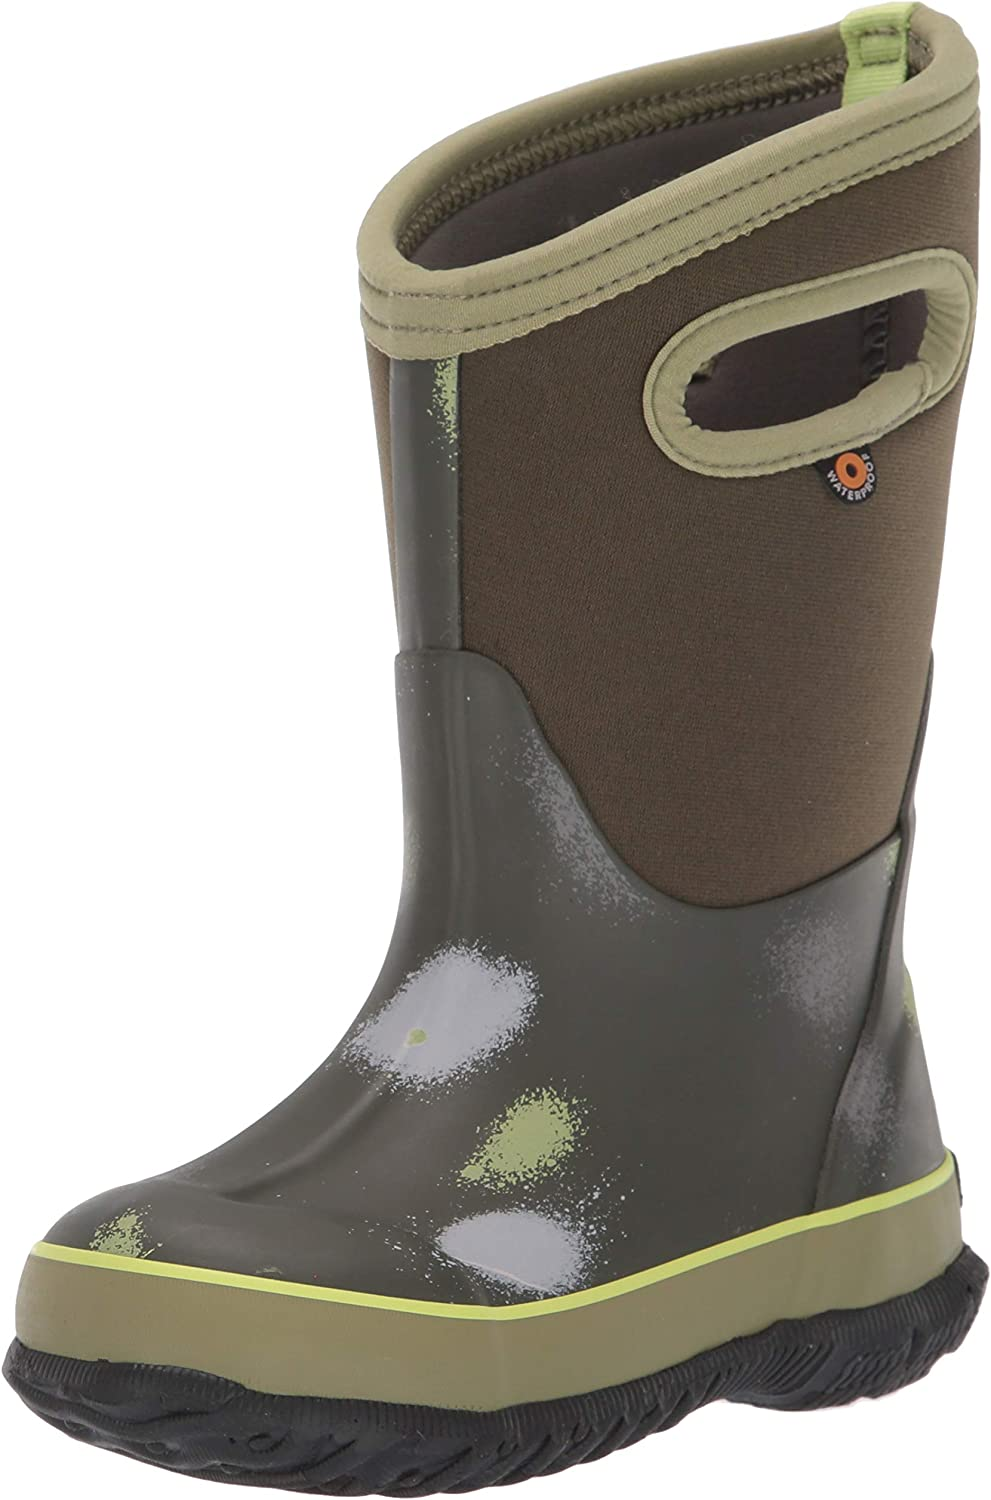 BOGS Columbus Mall NEW before selling ☆ Women's Classic High Waterproof Insulated Rubber S Neoprene